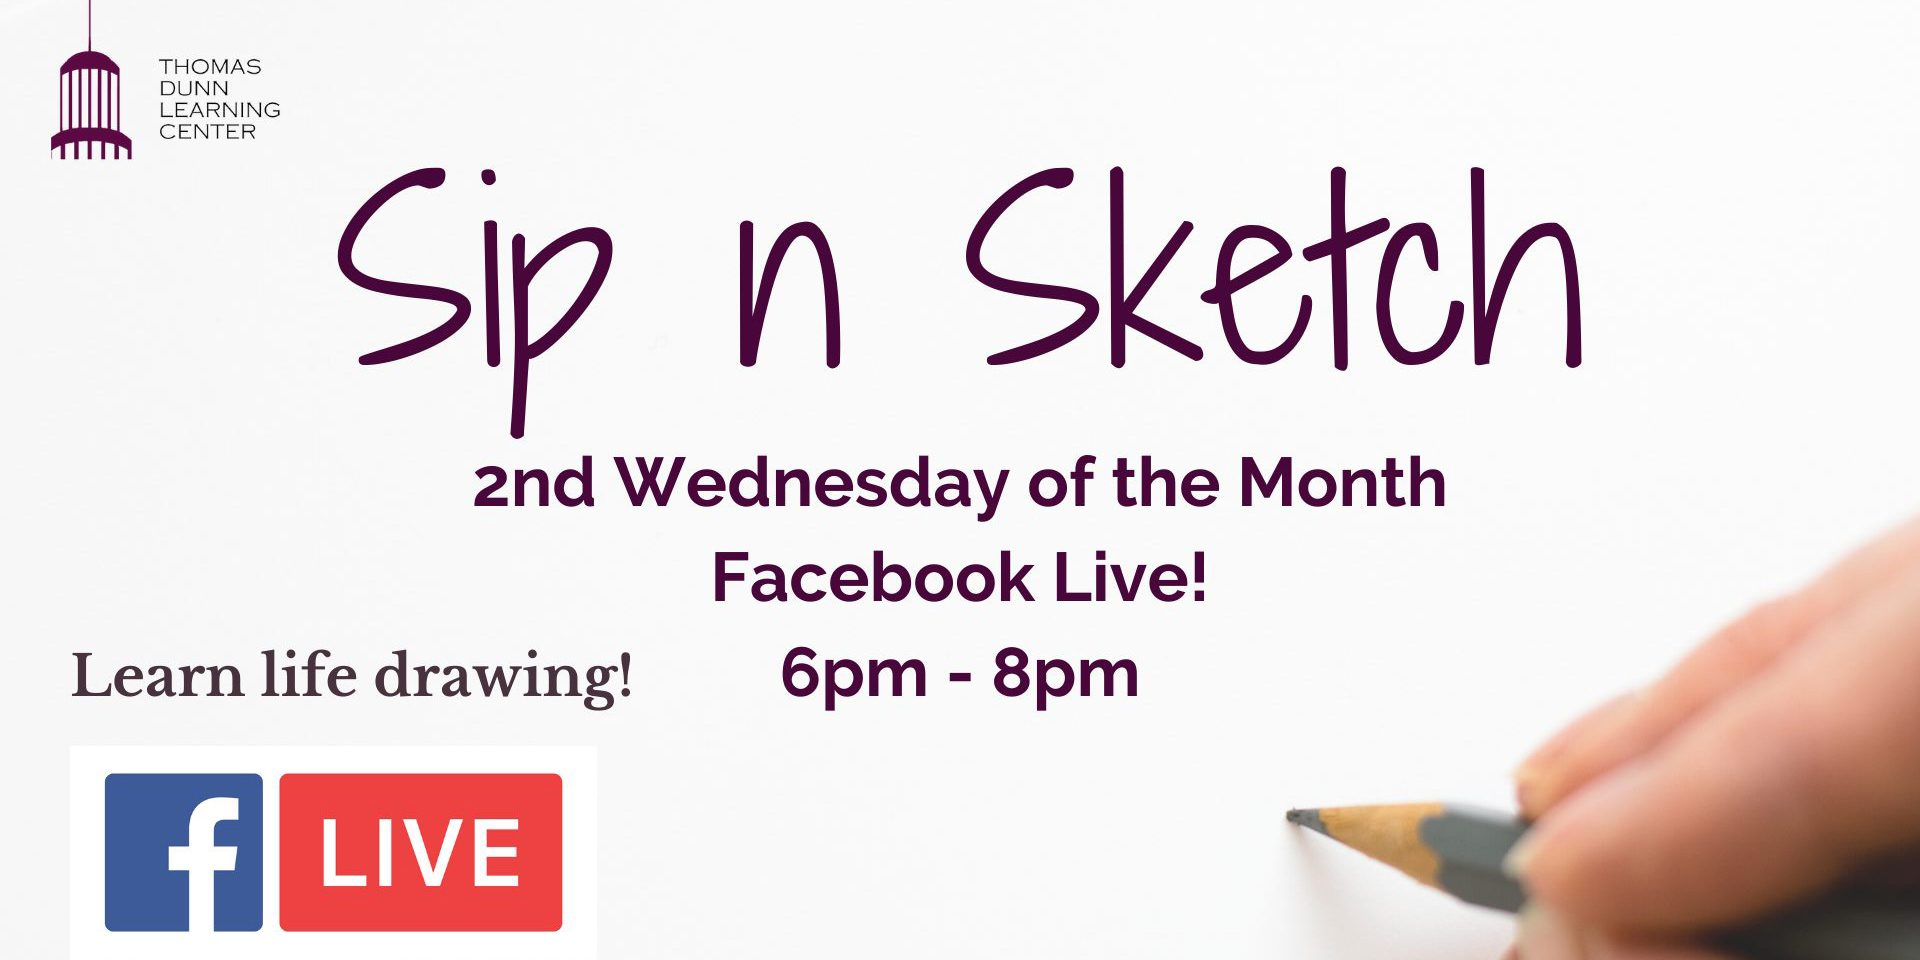 Sip 'n Sketch, second Wednesday of the month at Thomas Dunn Learning Center.